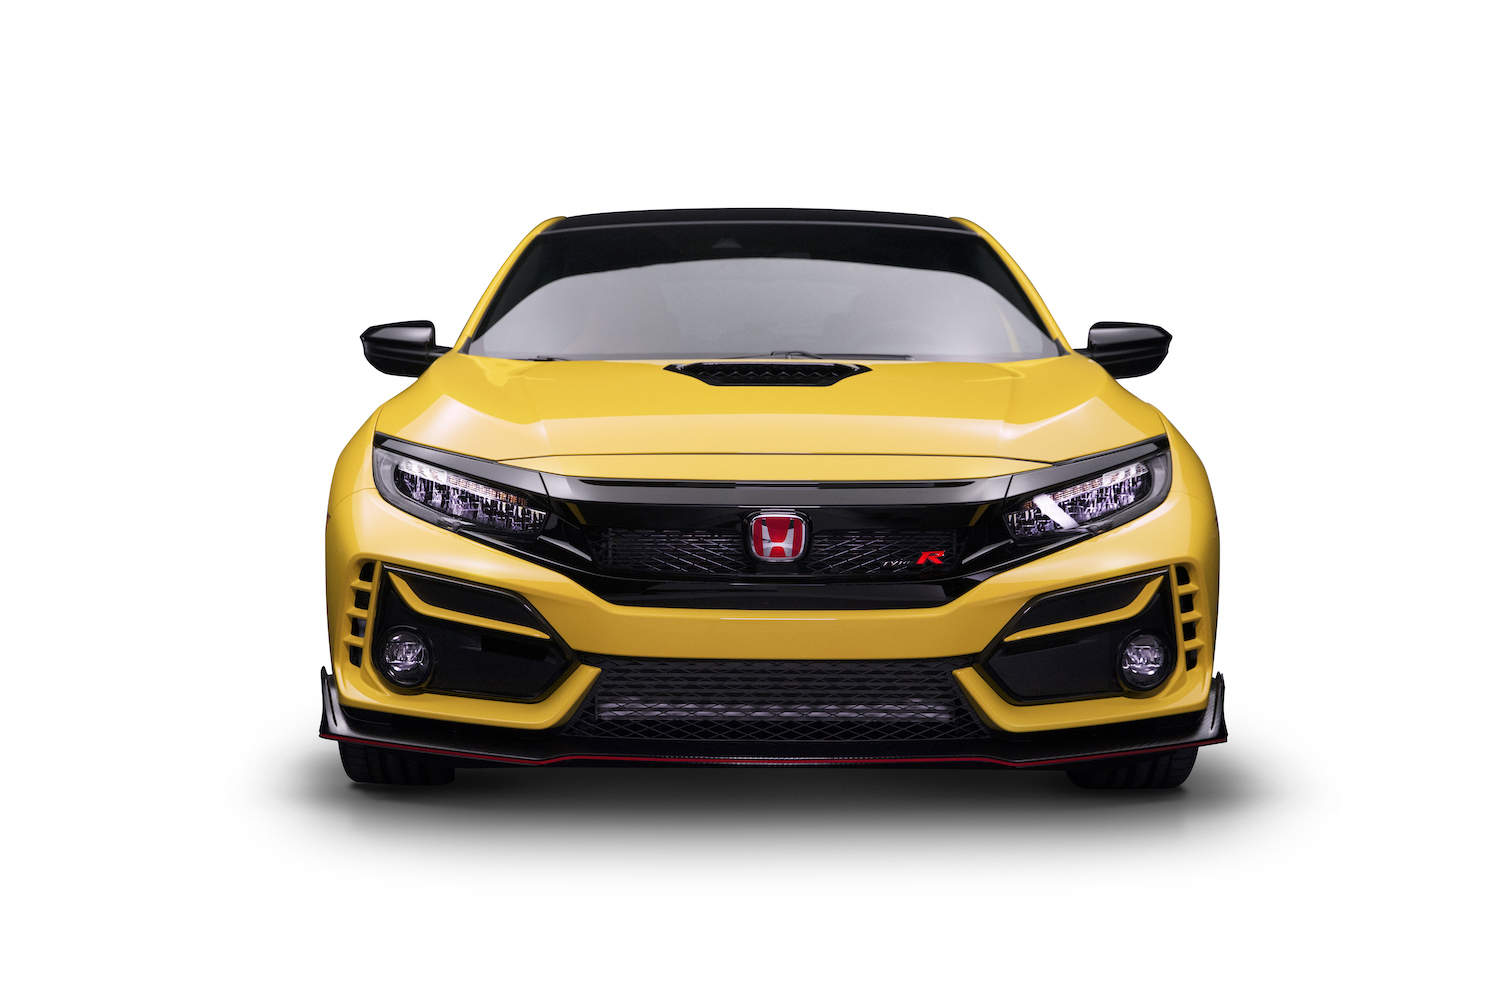 2021 Civic Type R Limited Edition front